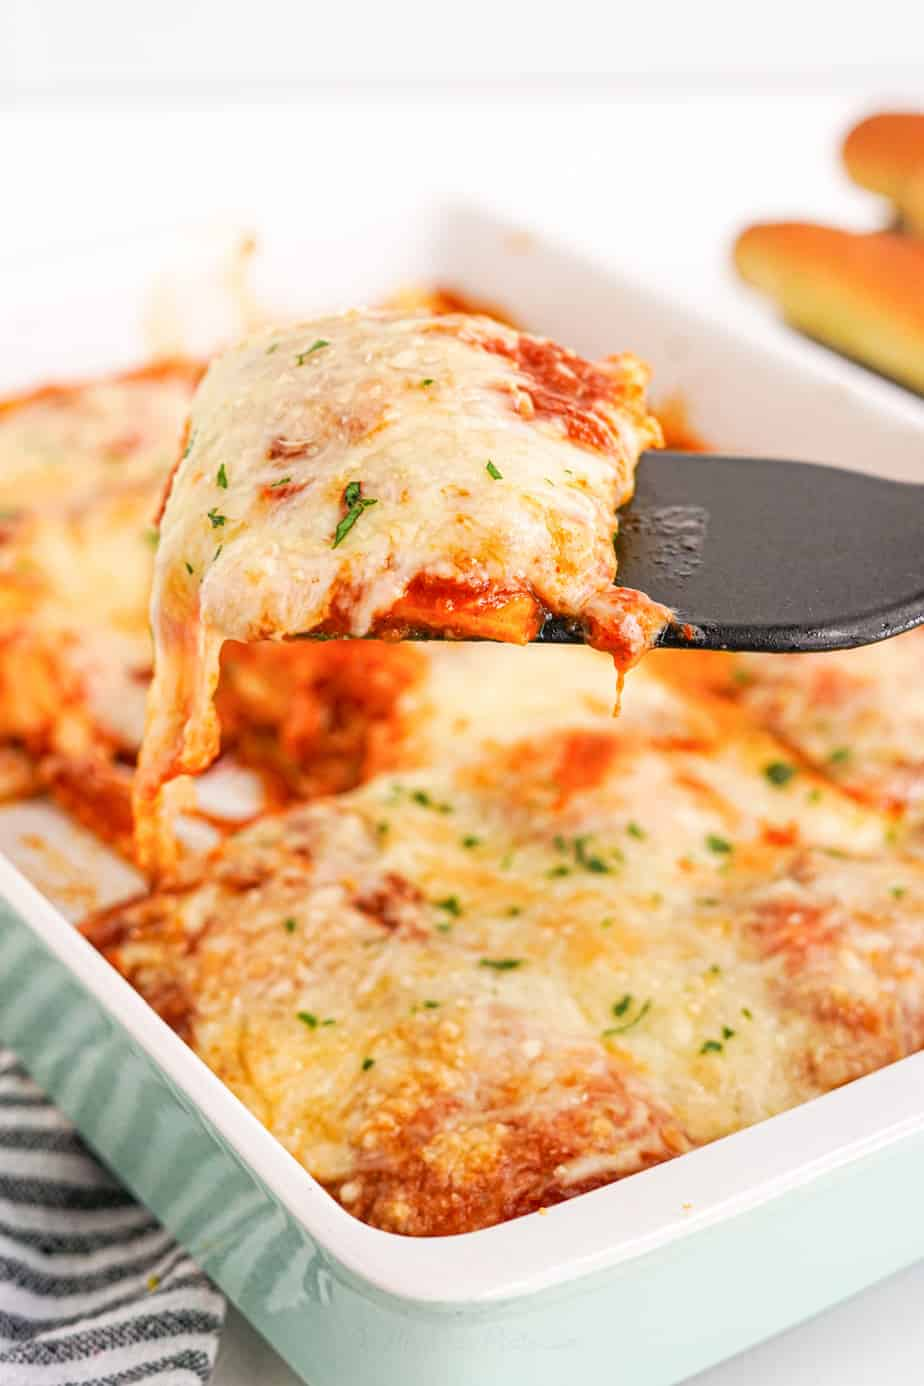 A serving of baked ravioli covered in cheese being pulled out of a casserole dish with a spatula